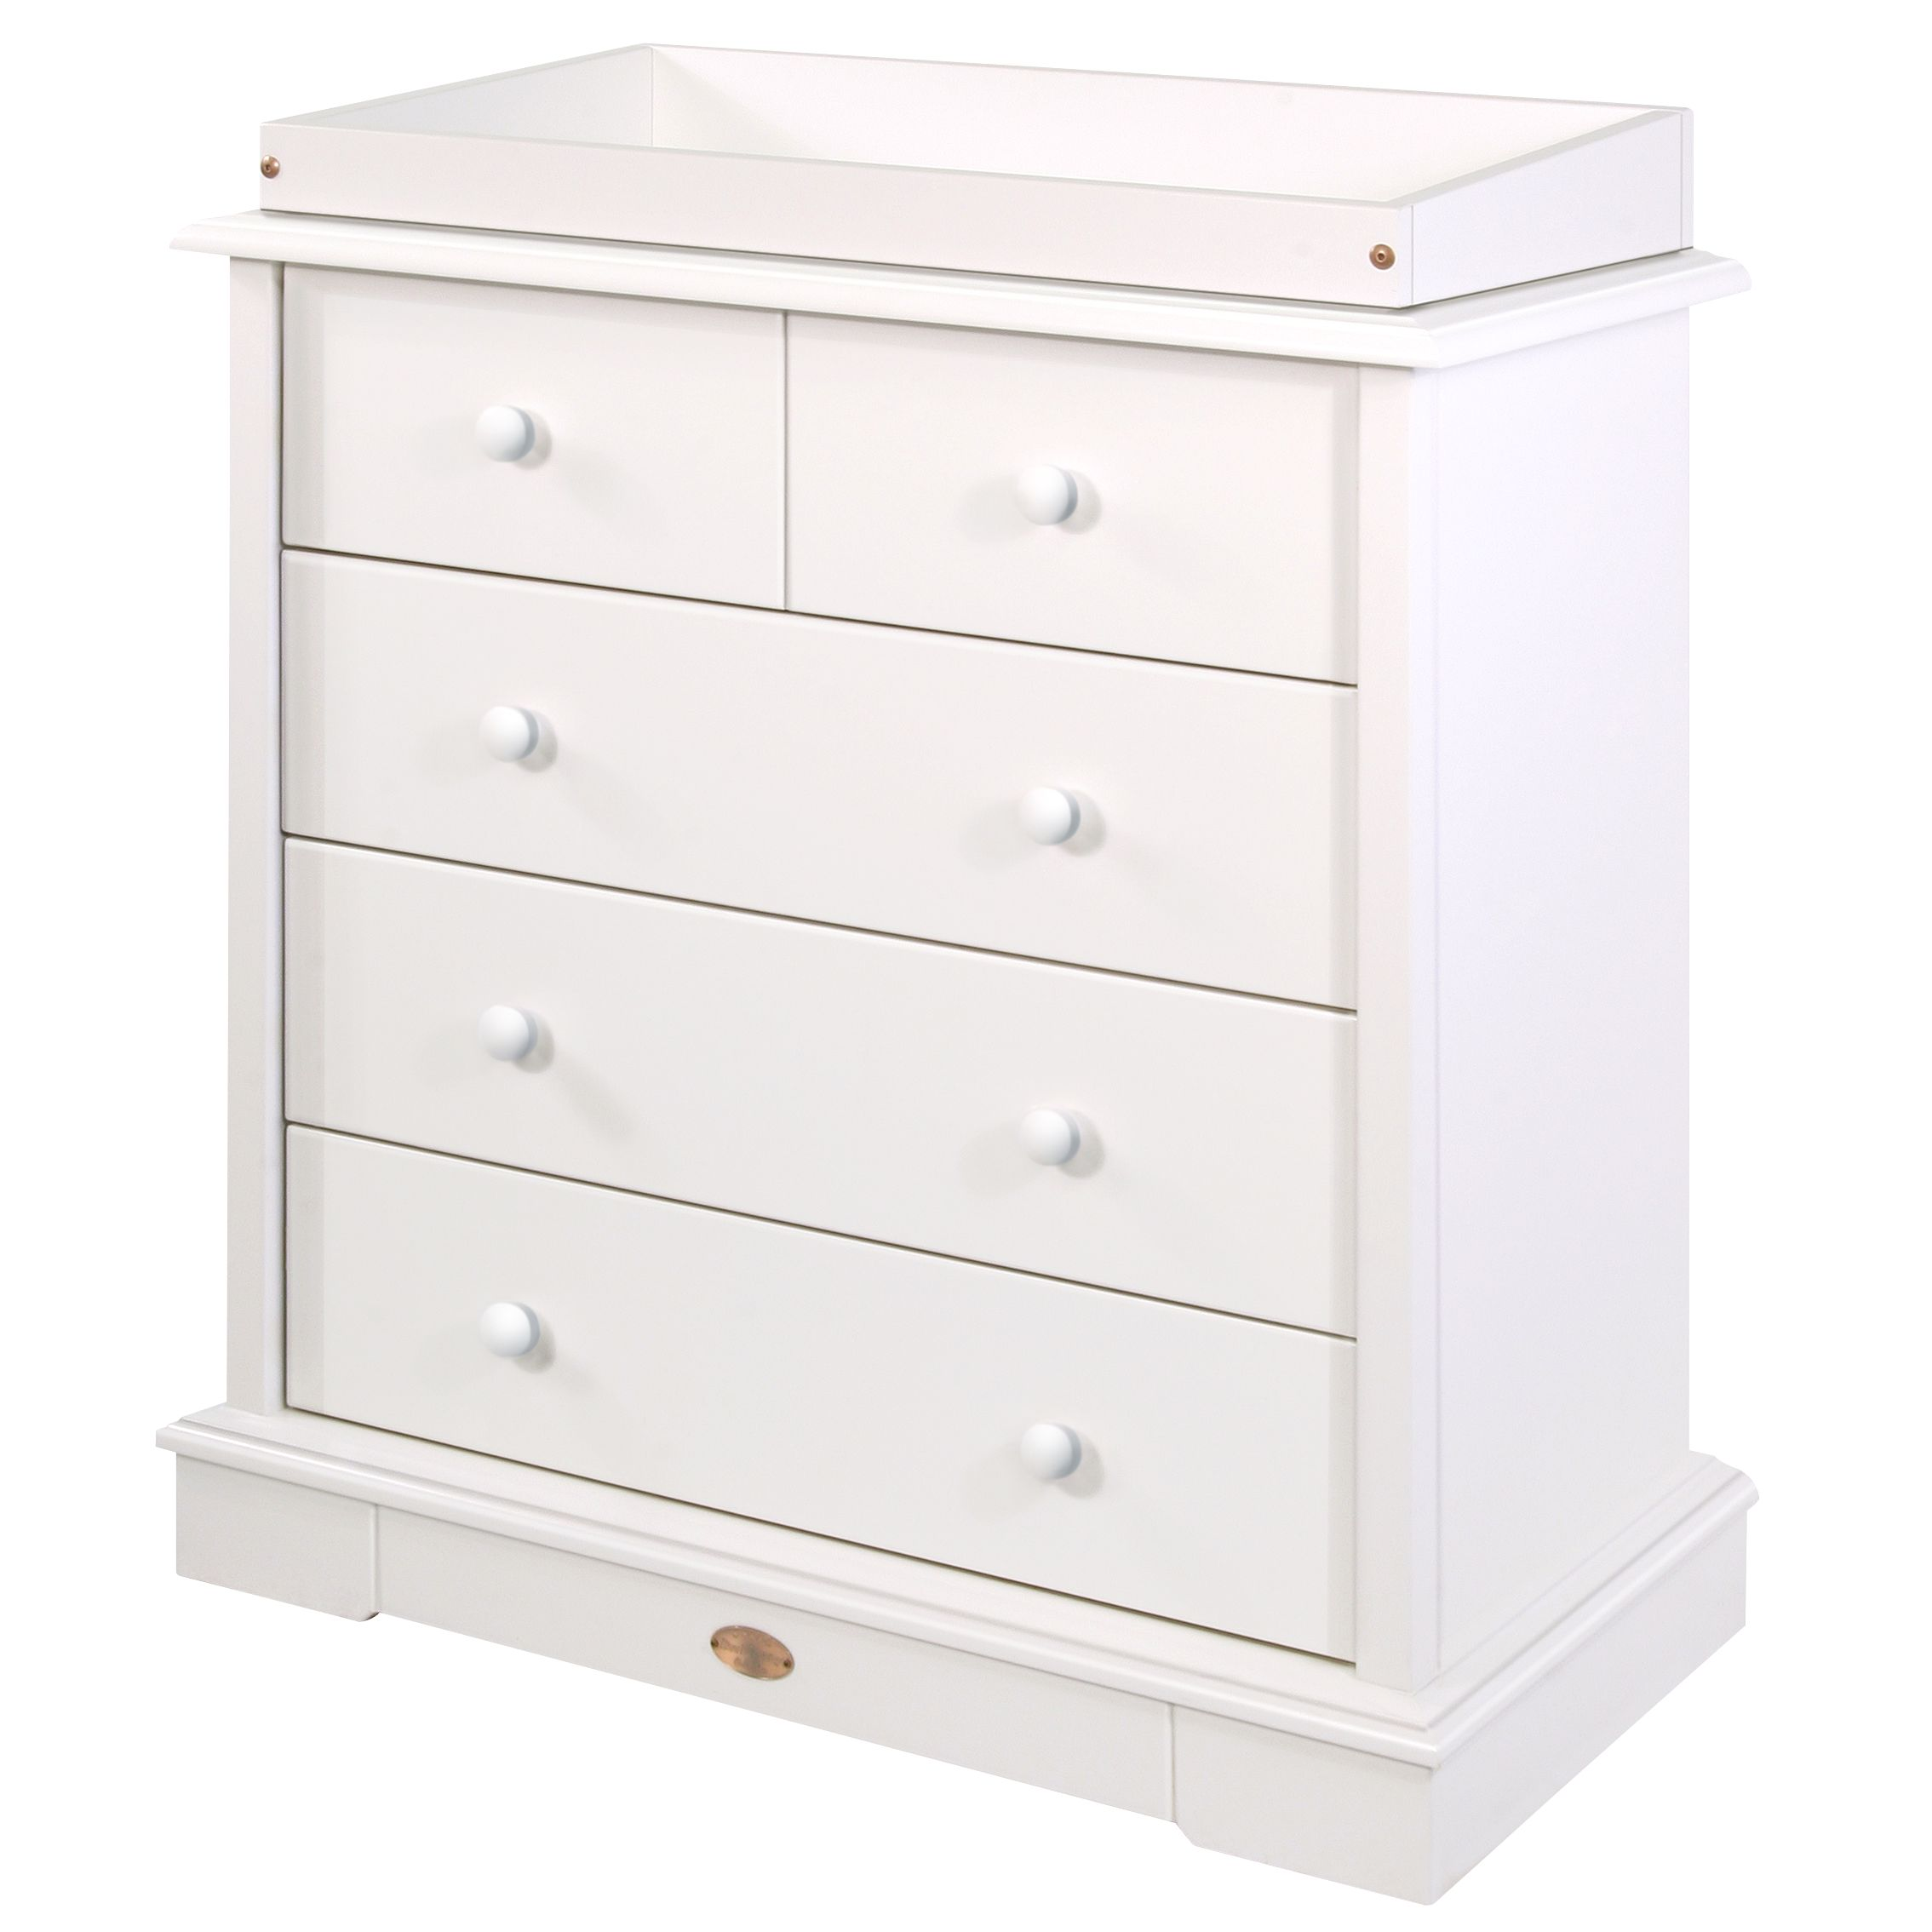 4 Drawer Chest, White